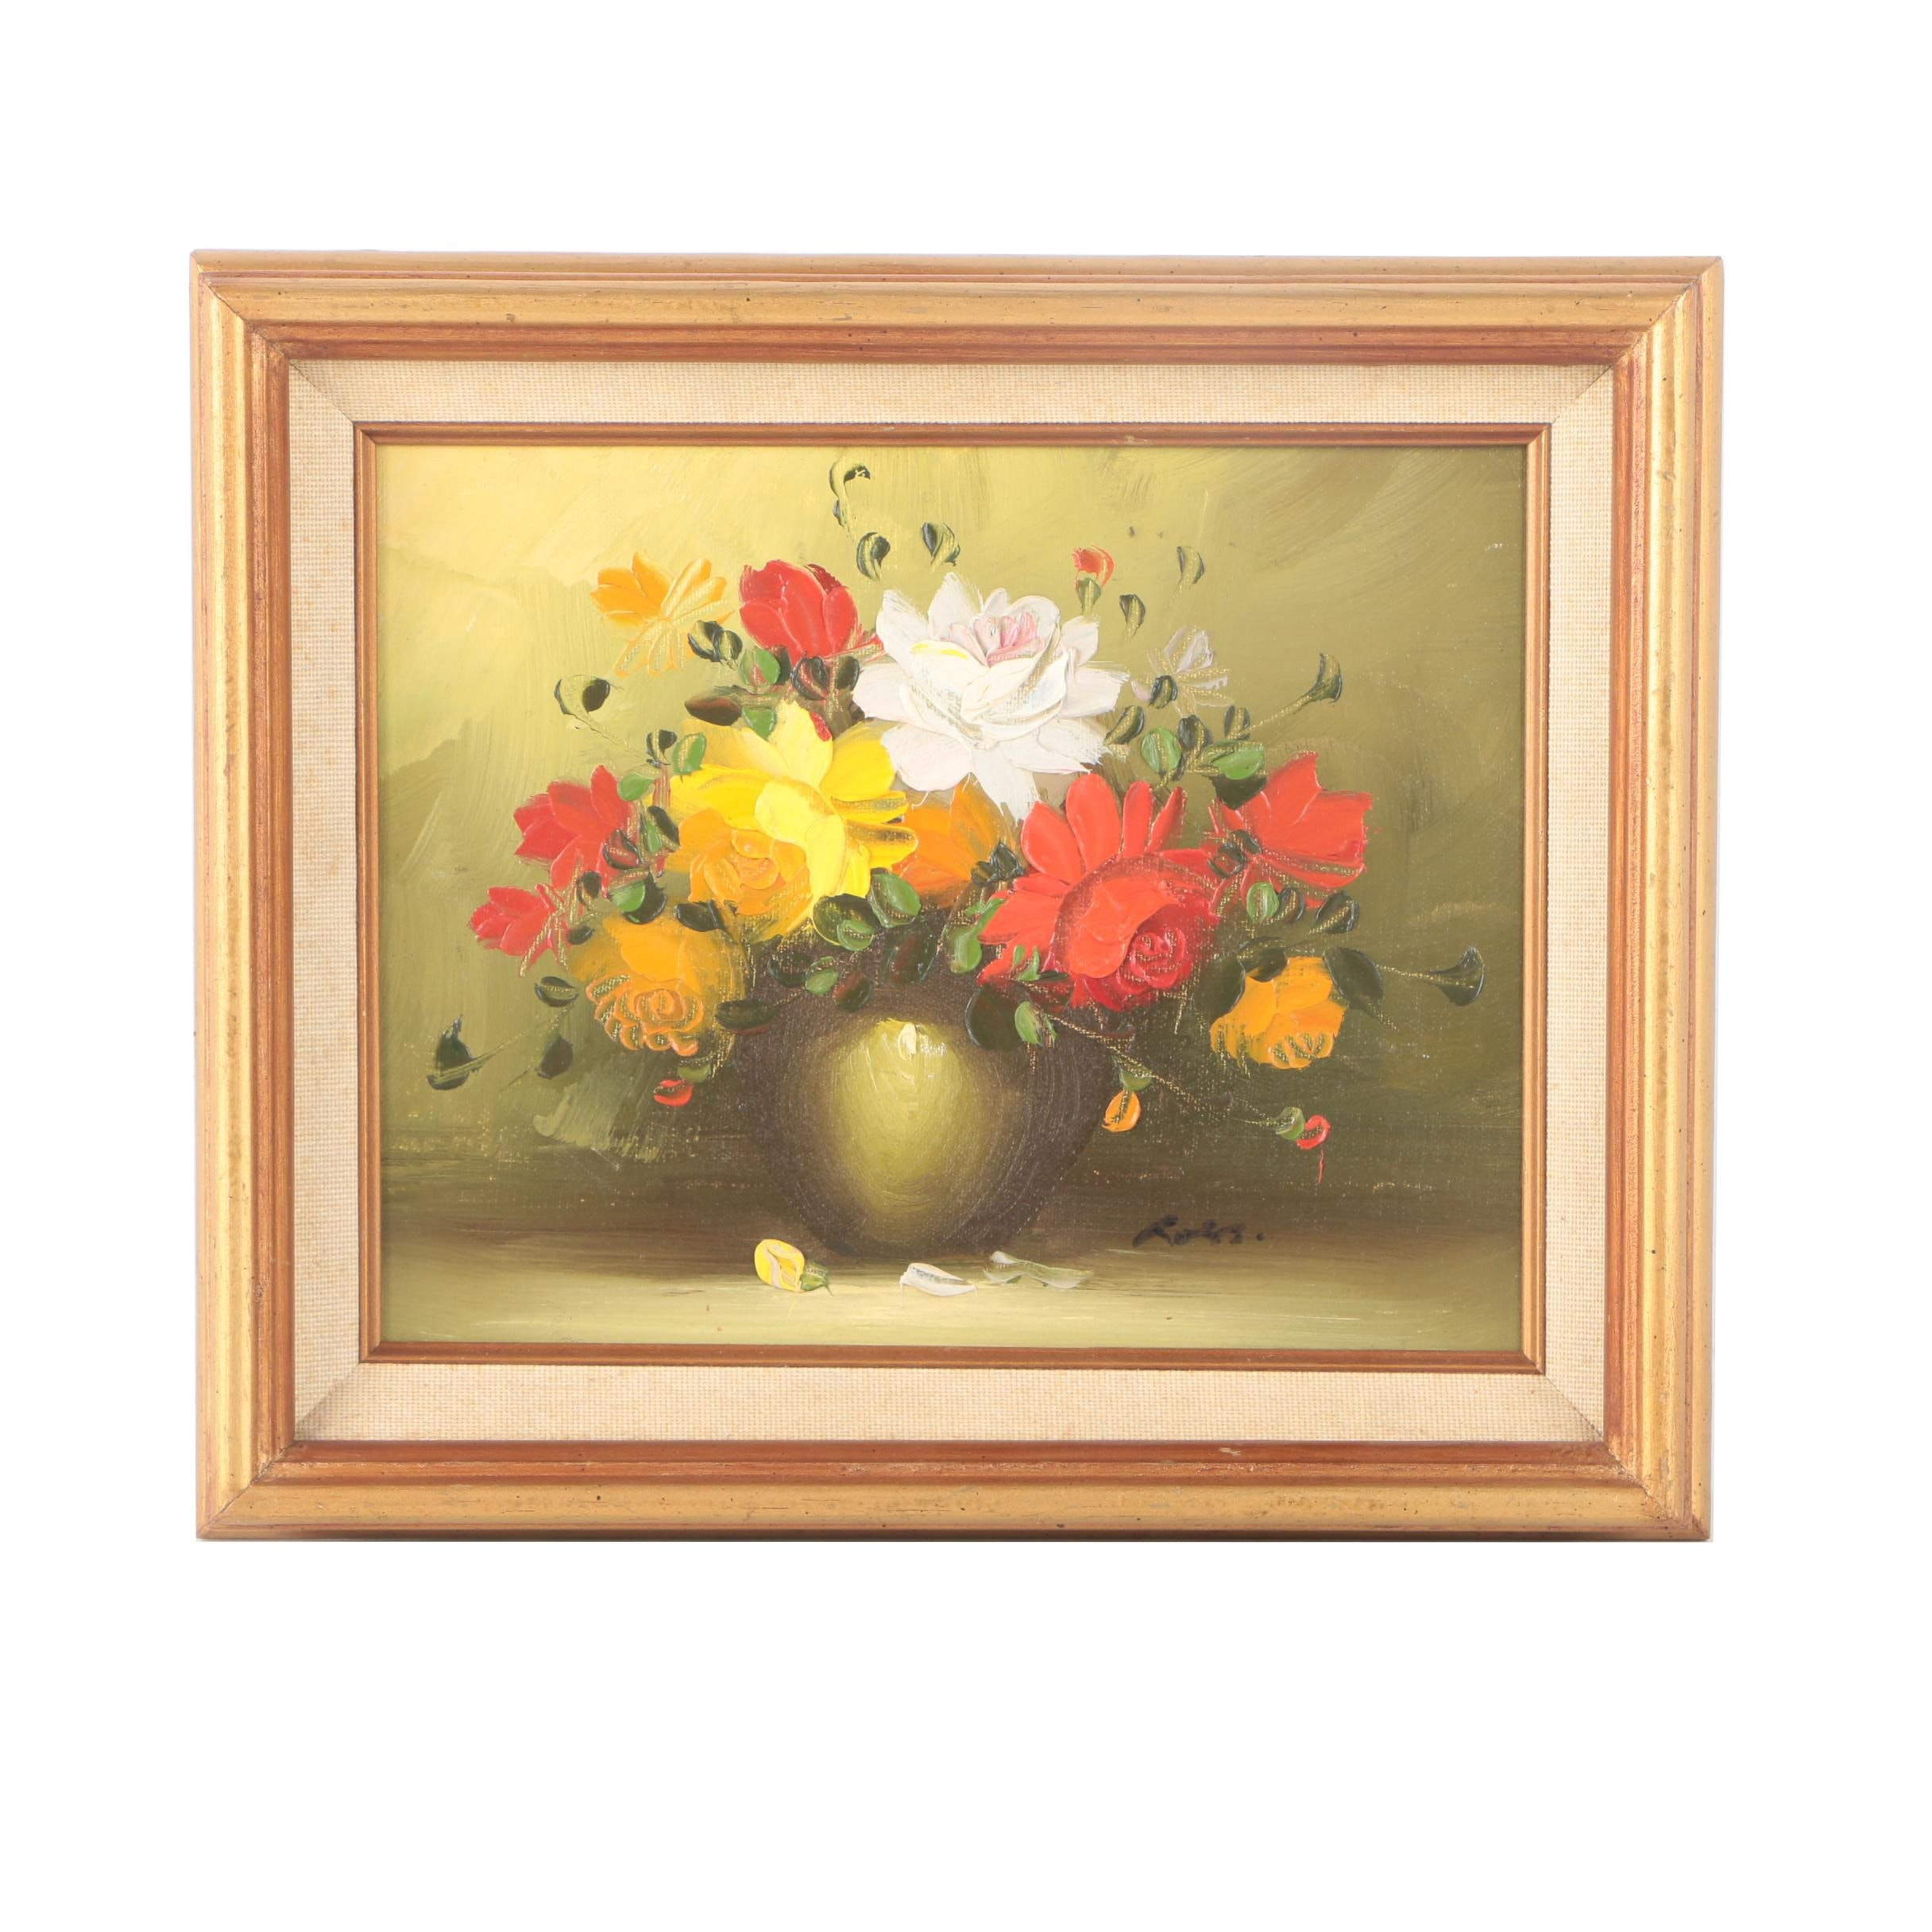 Ross Oil Painting on Canvas Board Floral Still Life